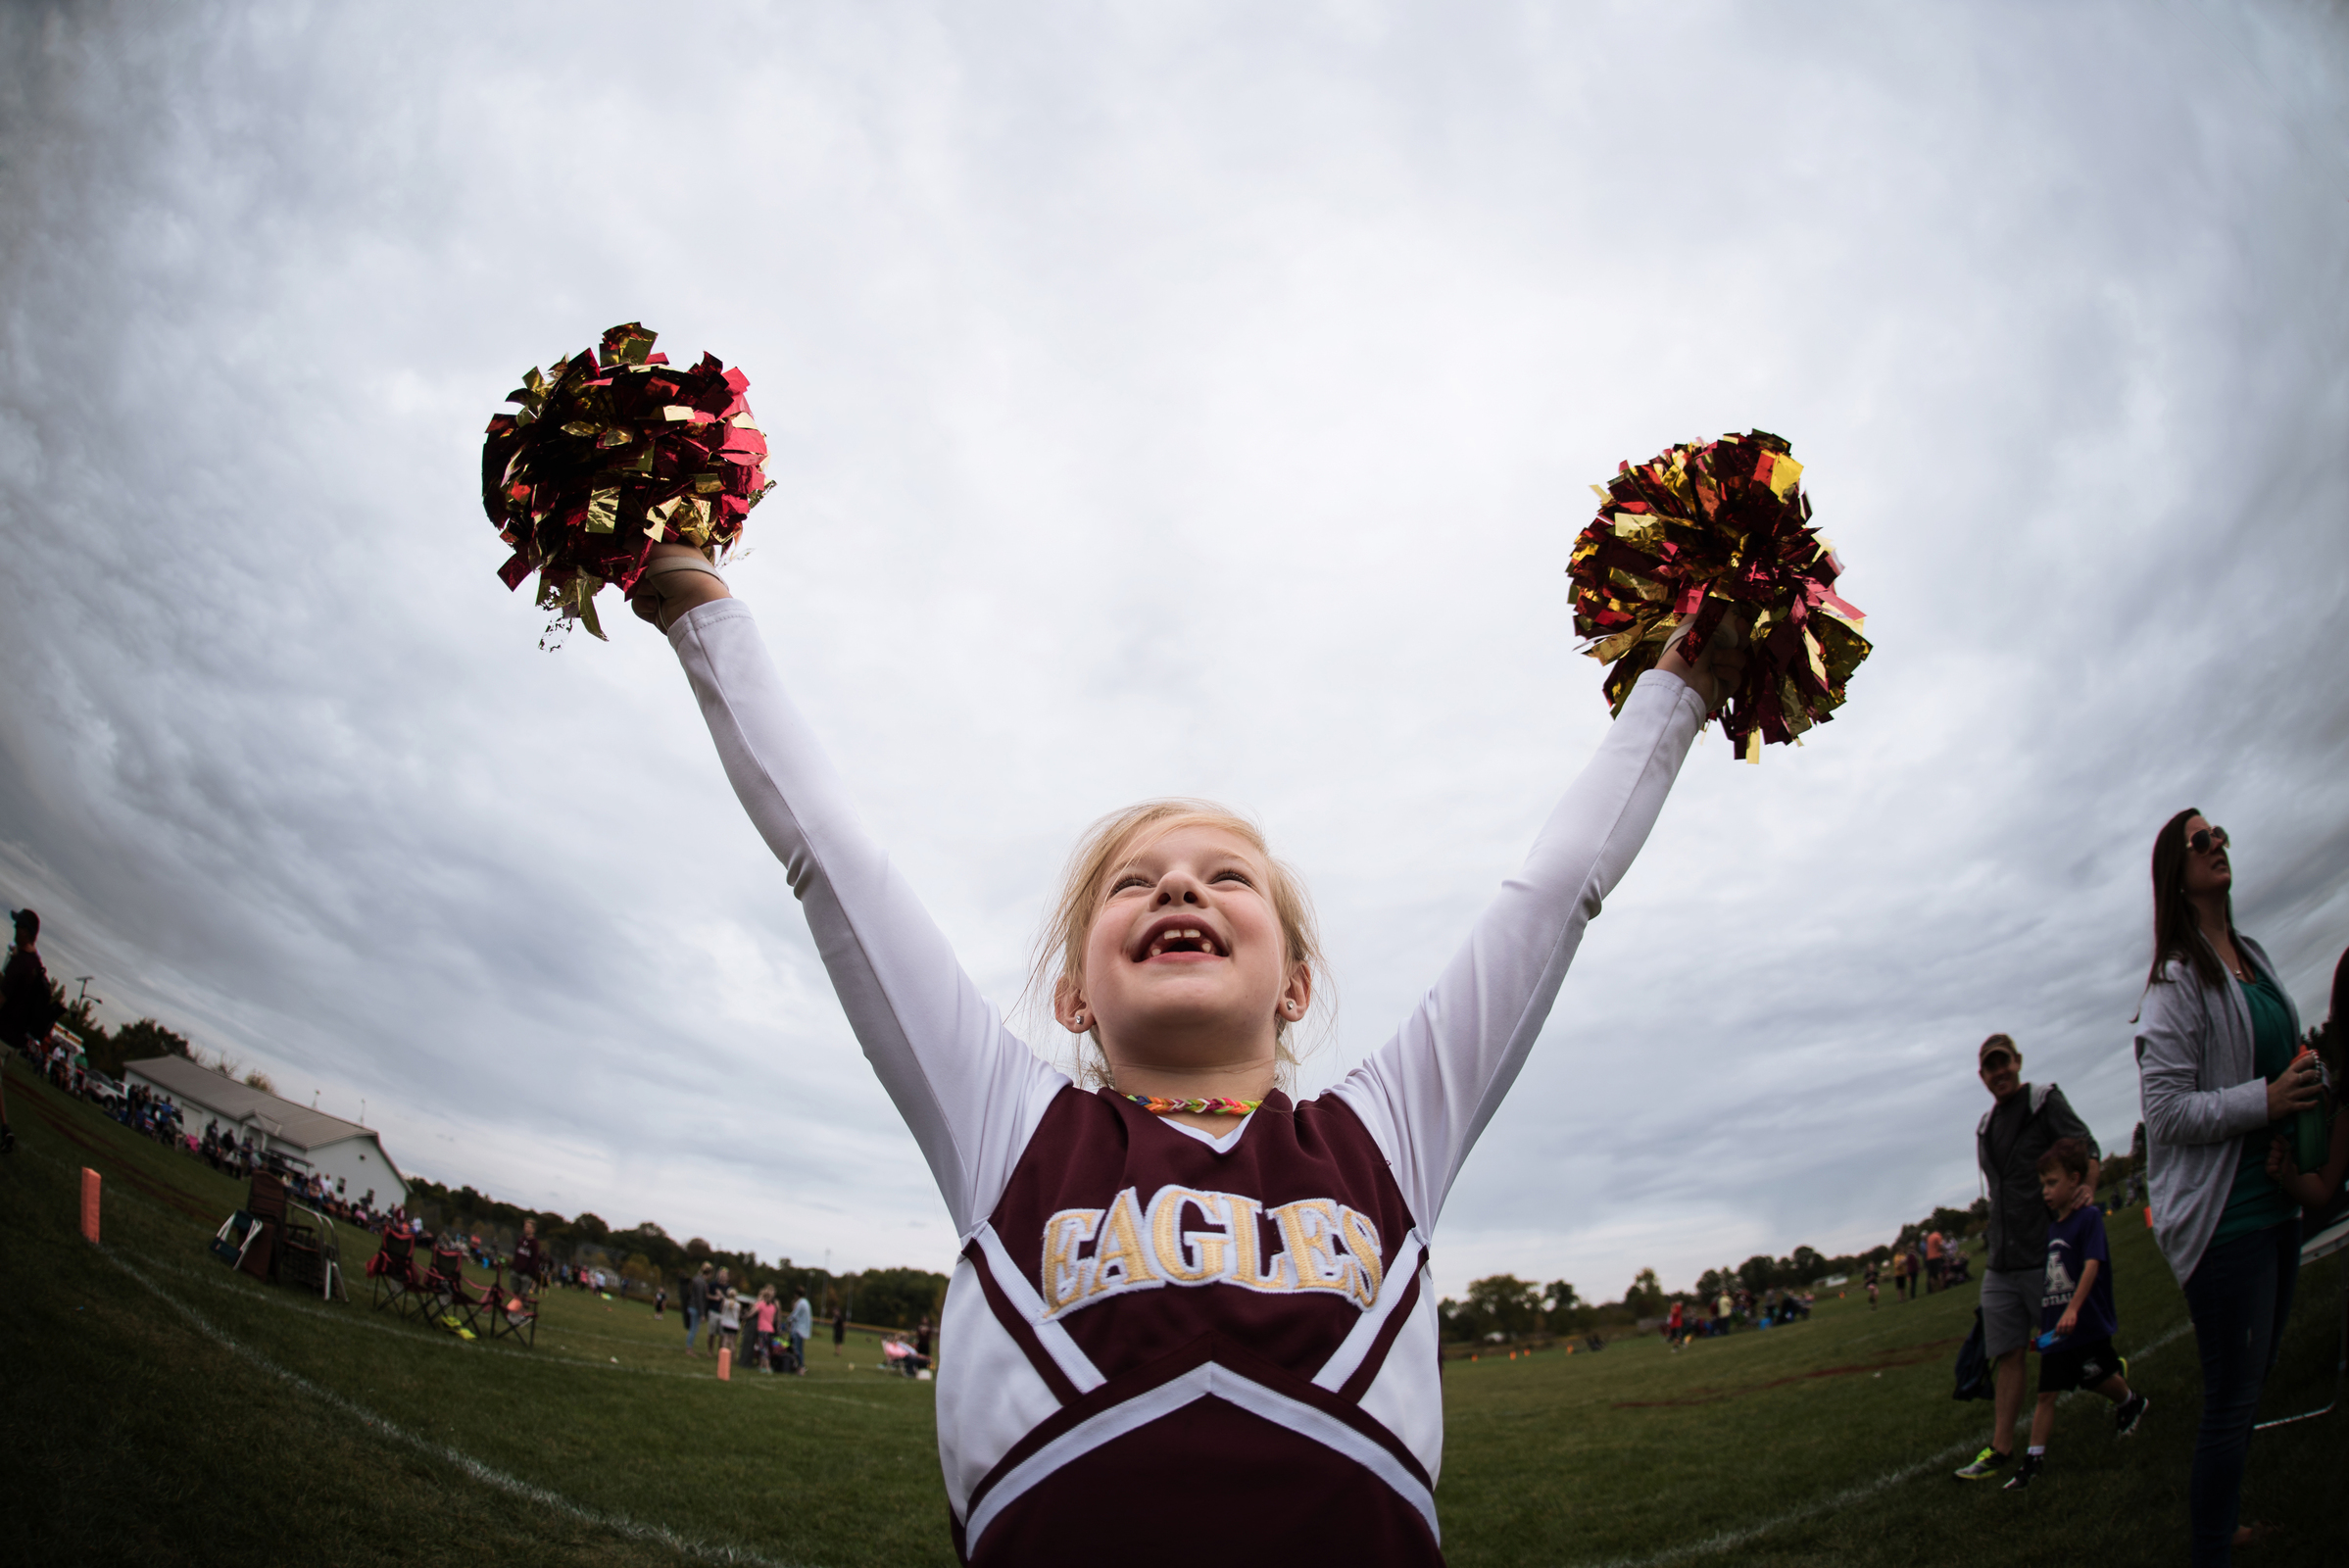 photographing kids sports girl with pom poms cheerleader by kellie bieser